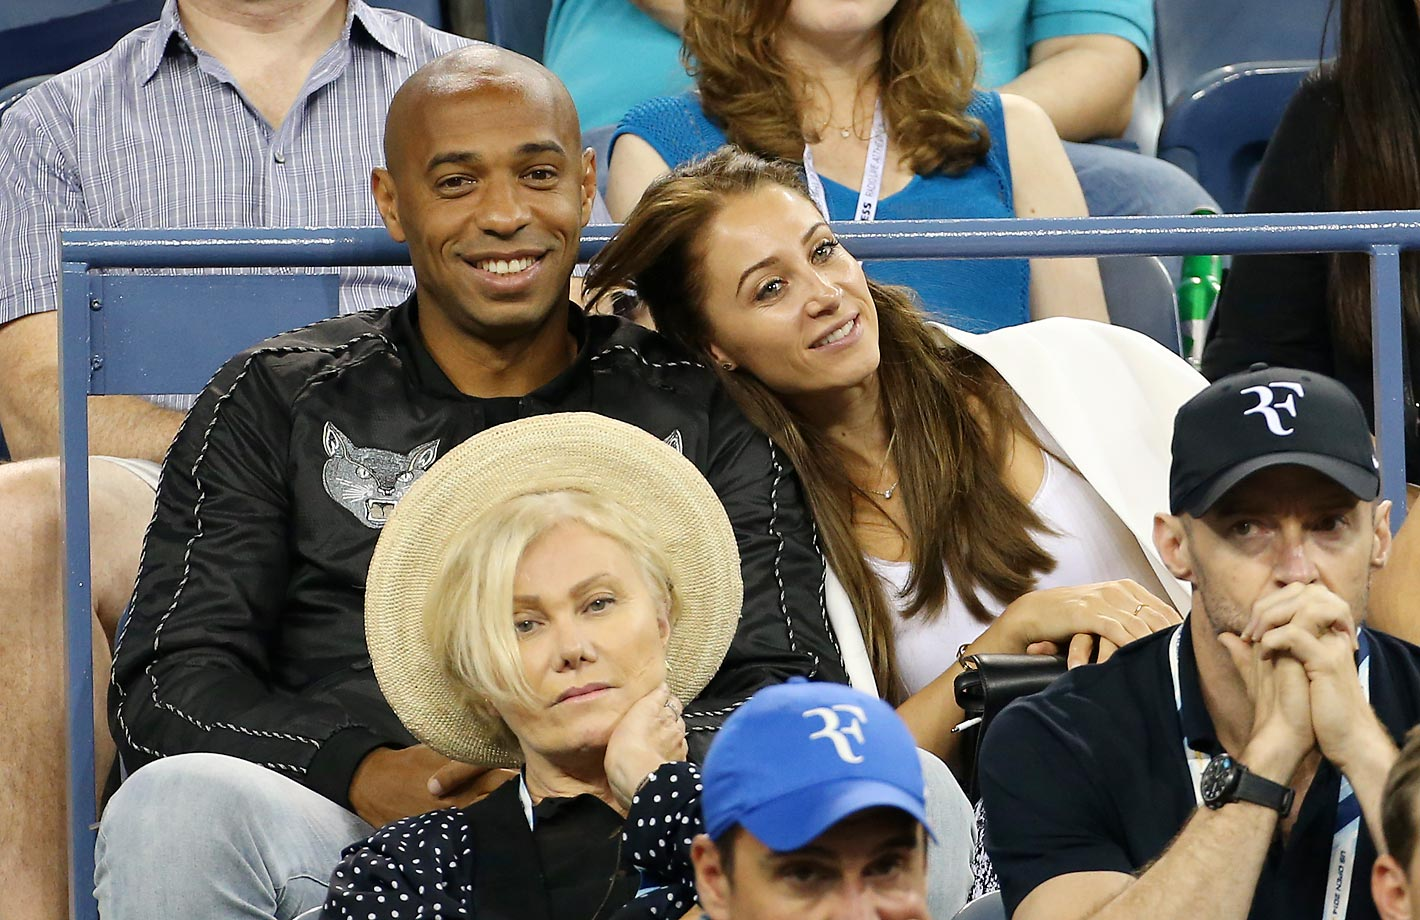 NEW YORK, NY - SEPTEMBER 4: Thierry Henry and his girlfriend Andrea Rajacic attend the match between Roger Federer of Switzerland and Gael Monfils of France during Day 11 of the 2014 US Open at USTA Billie Jean King National Tennis Center on September 4, 2014 in the Flushing neighborhood of the Queens borough of New York City. (Photo by Jean Catuffe/GC Images)